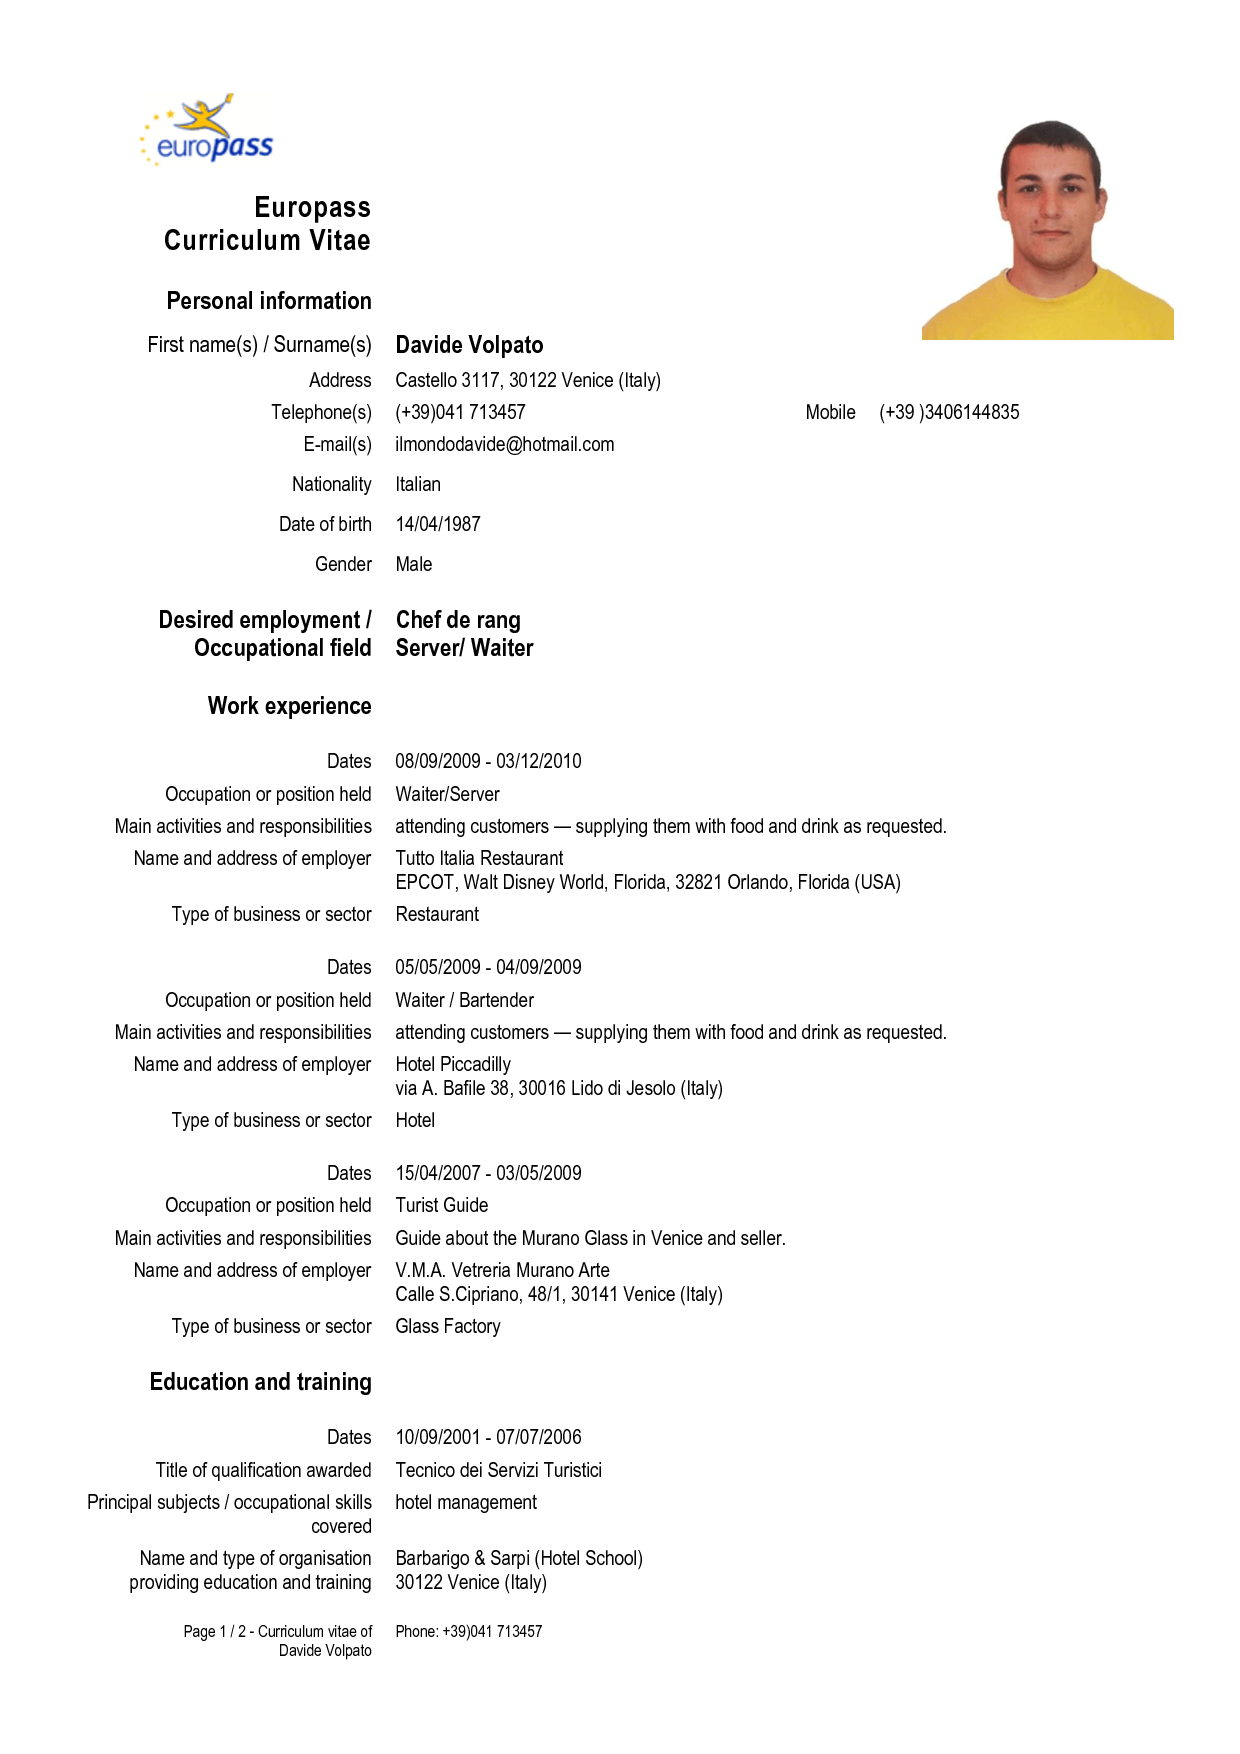 cv form in english download cv resume examples to download for free slideshare europass cv download - Cv Resume Template Download